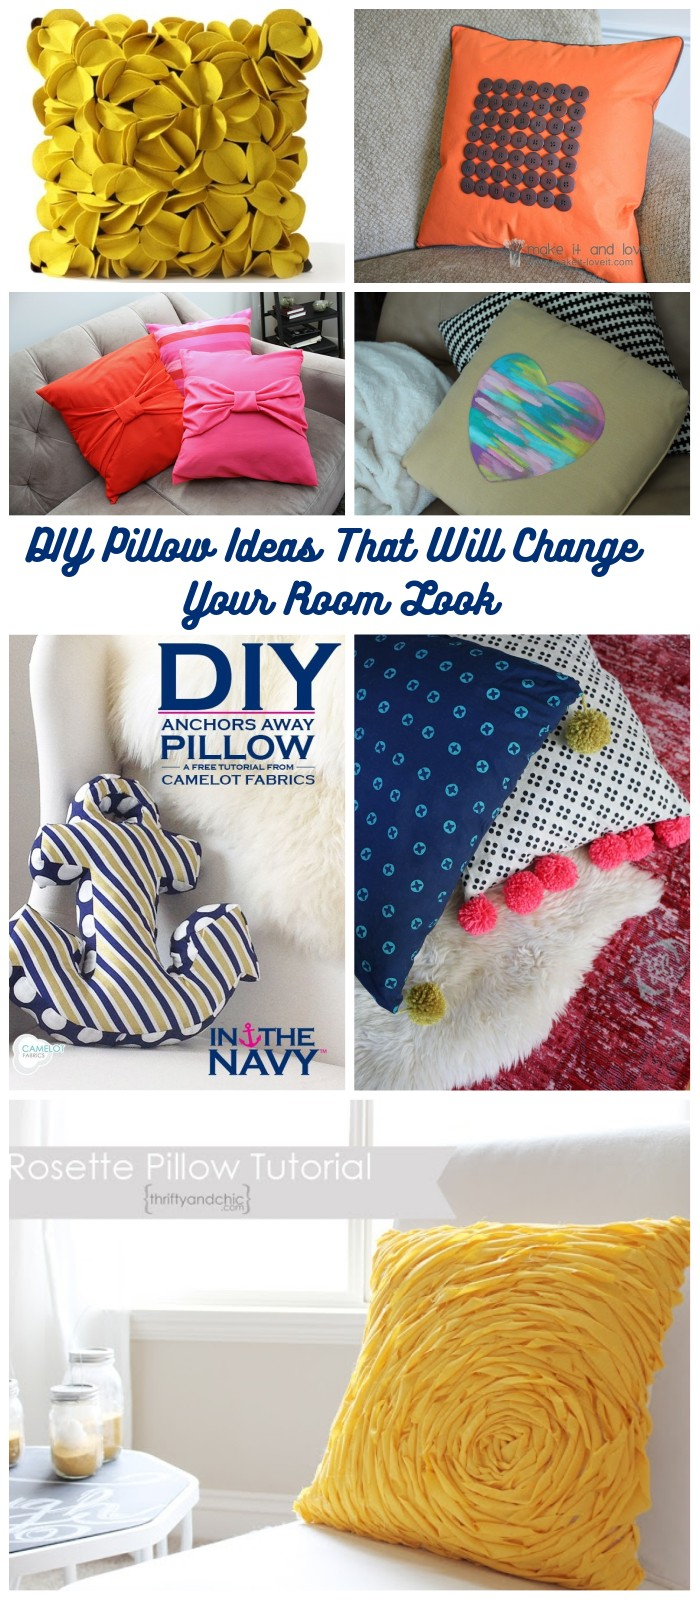 DIY Pillow Ideas That Will Change Your Room Look DIY Pillow Ideas That Will Change Room Look